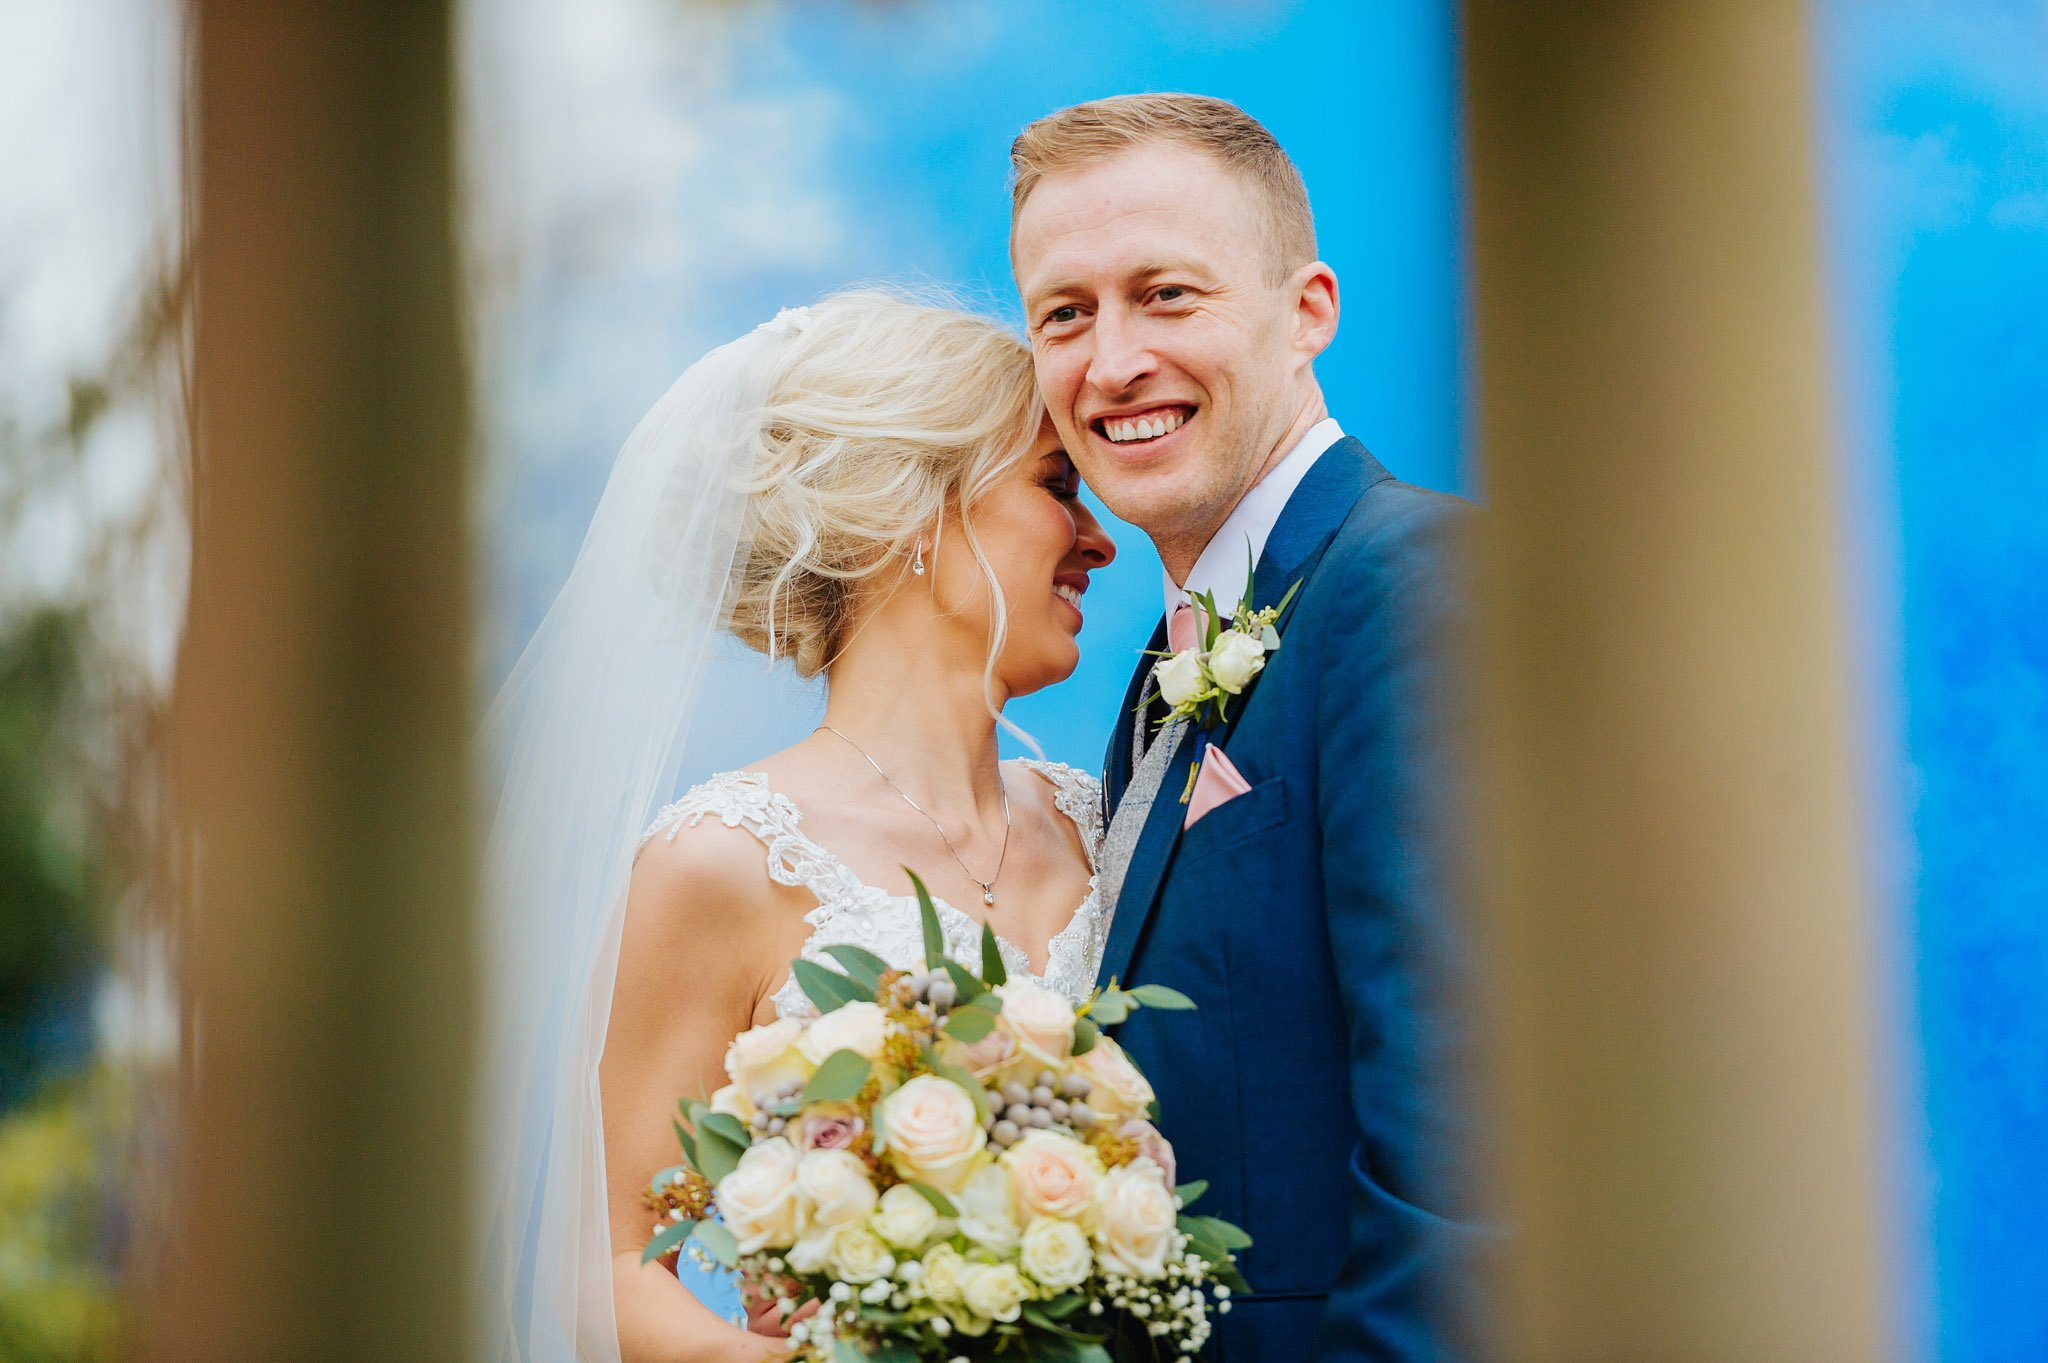 Lemore Manor wedding, Herefordshire - West Midlands | Sadie + Ken 90